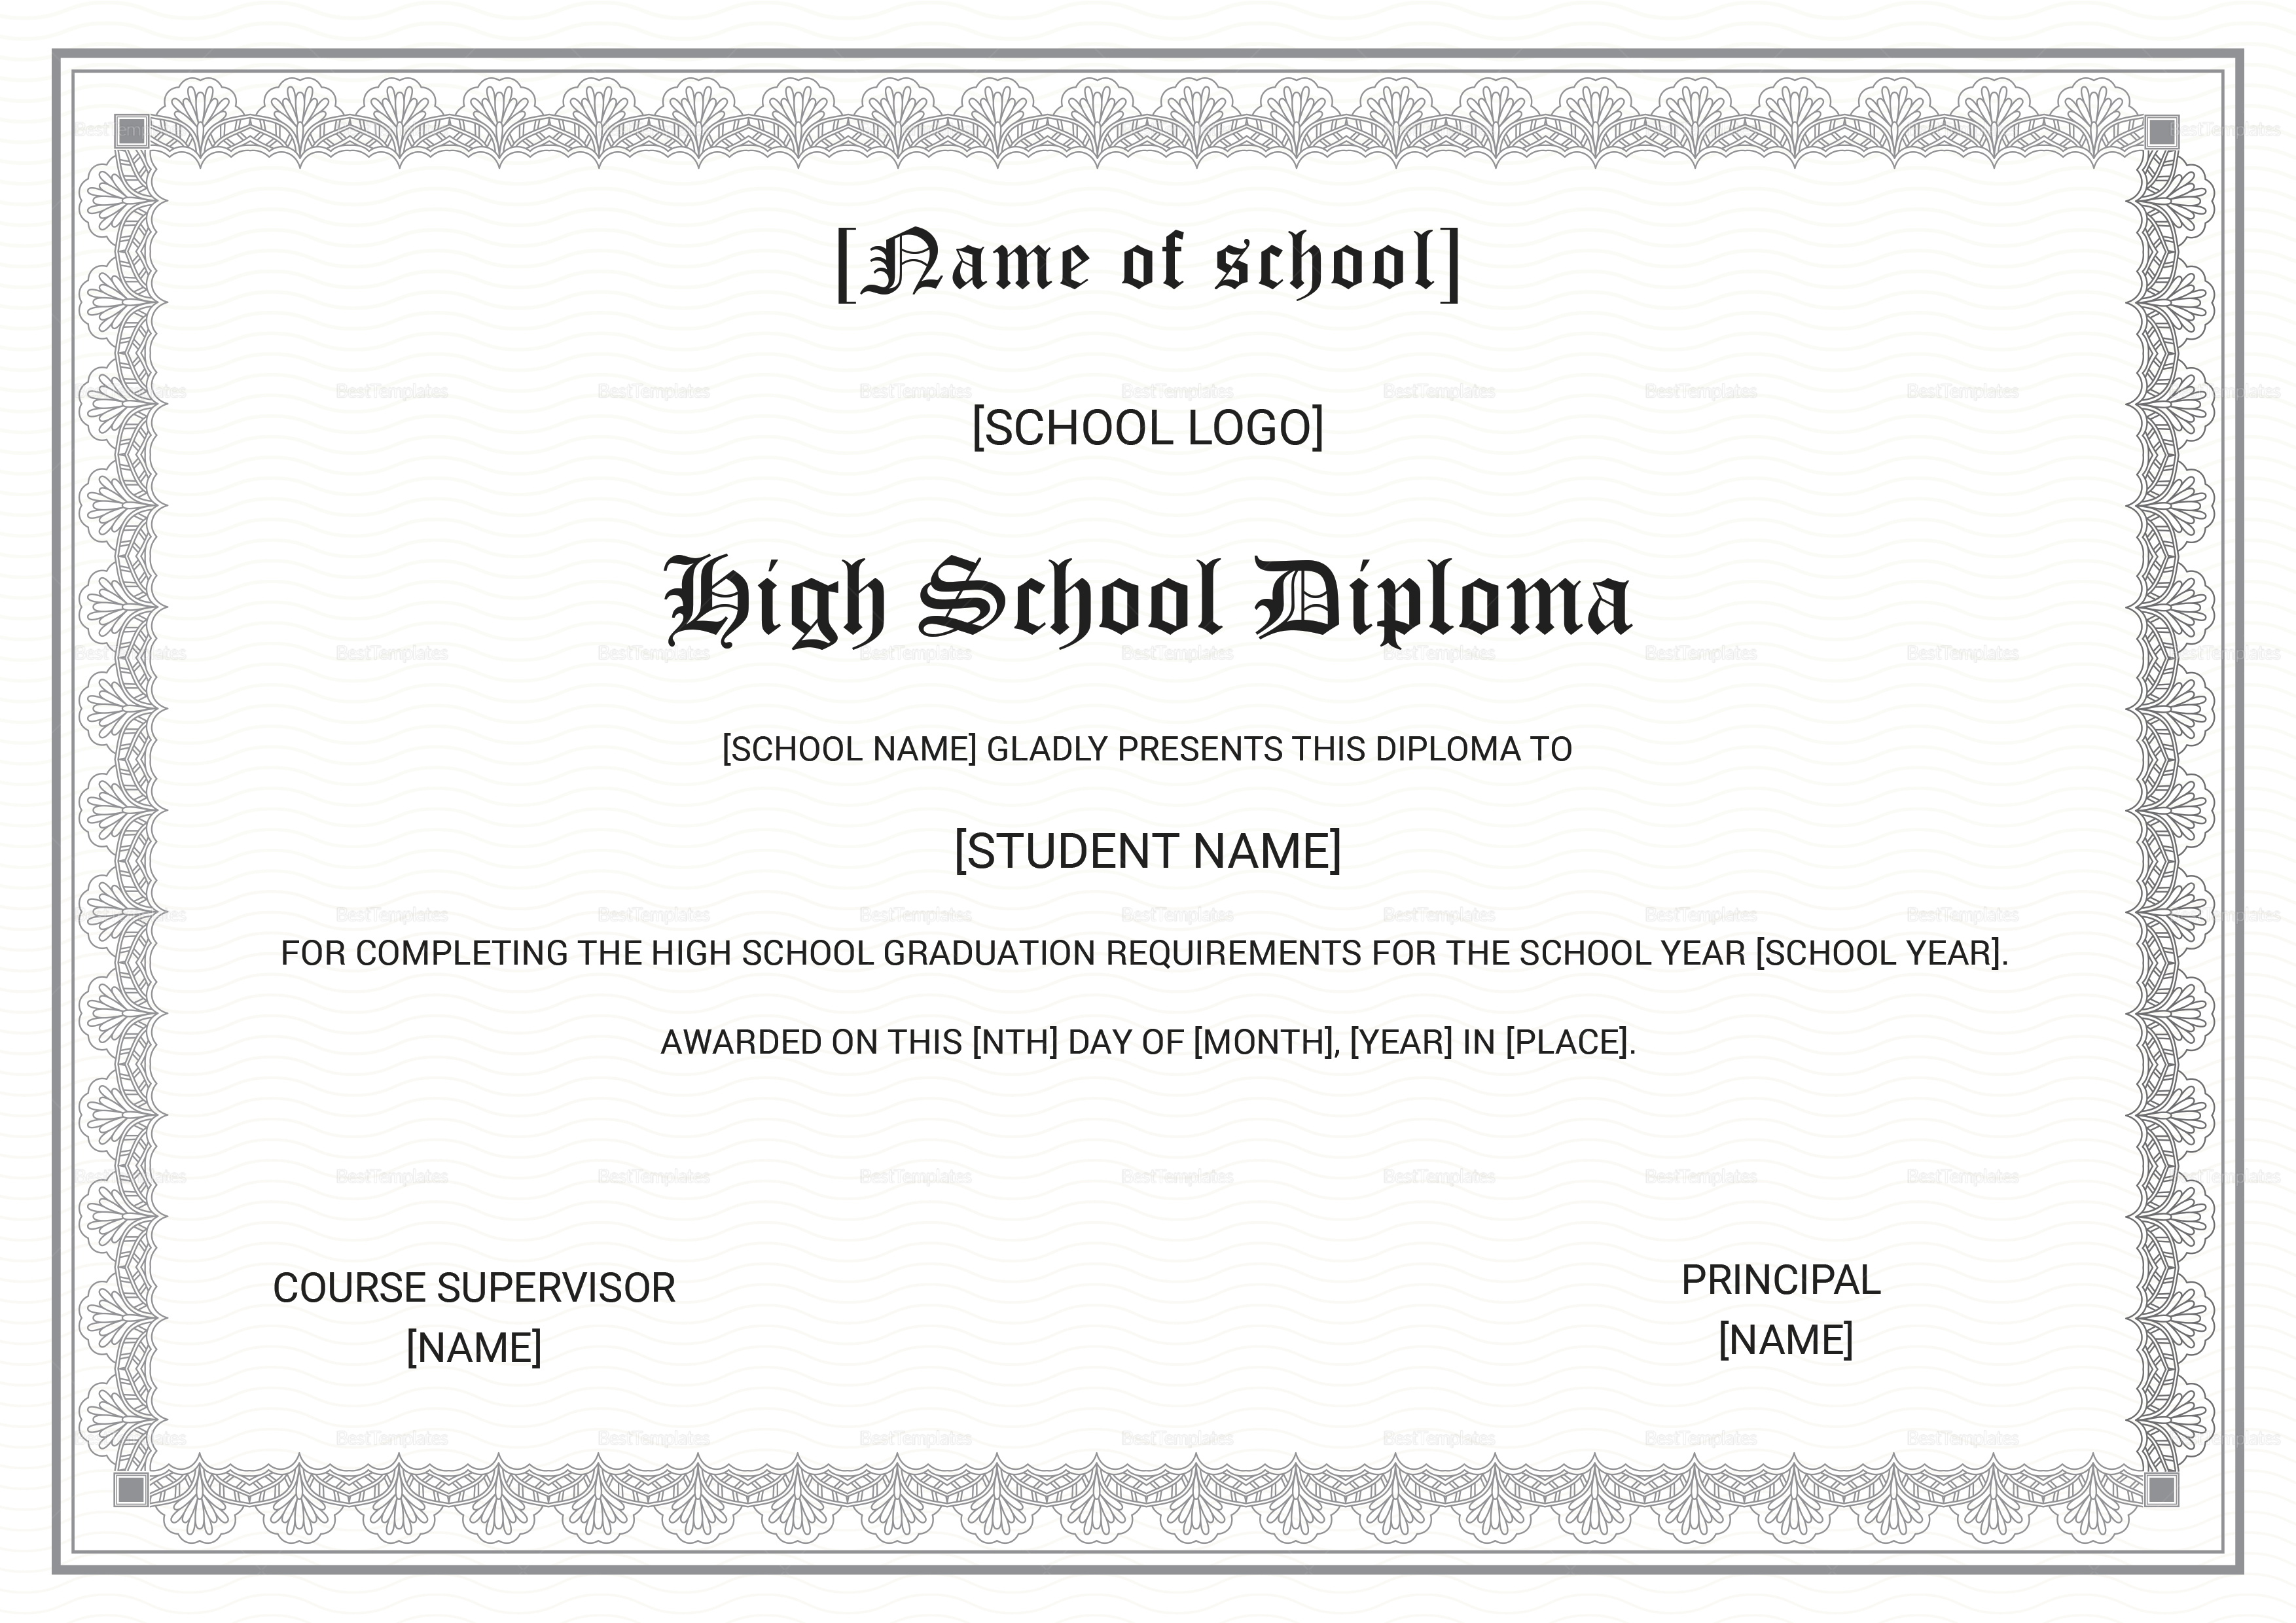 Diploma Completion Certificate for High School